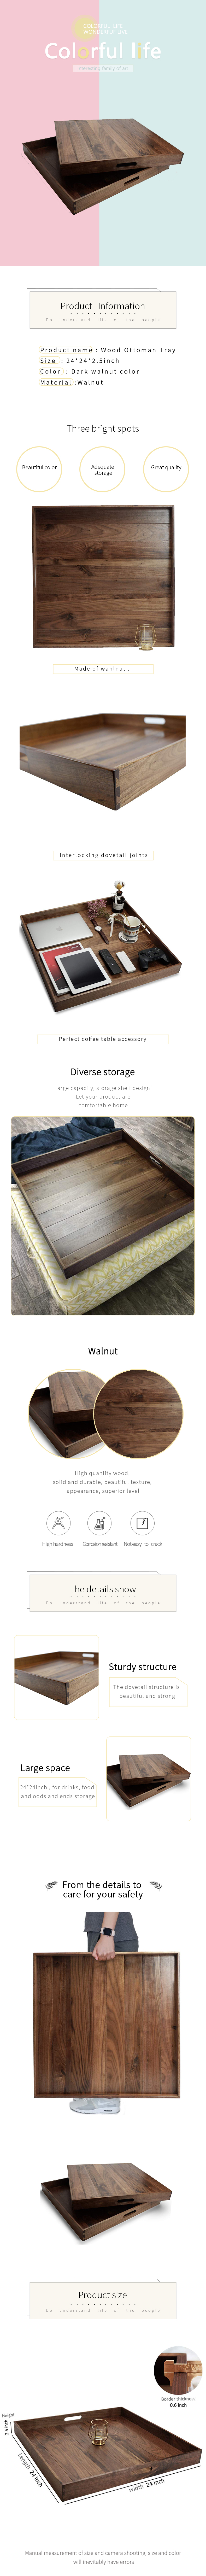 24 x 24 Inches Extra Large Square Black Walnut Wood Ottoman Tray with Handles